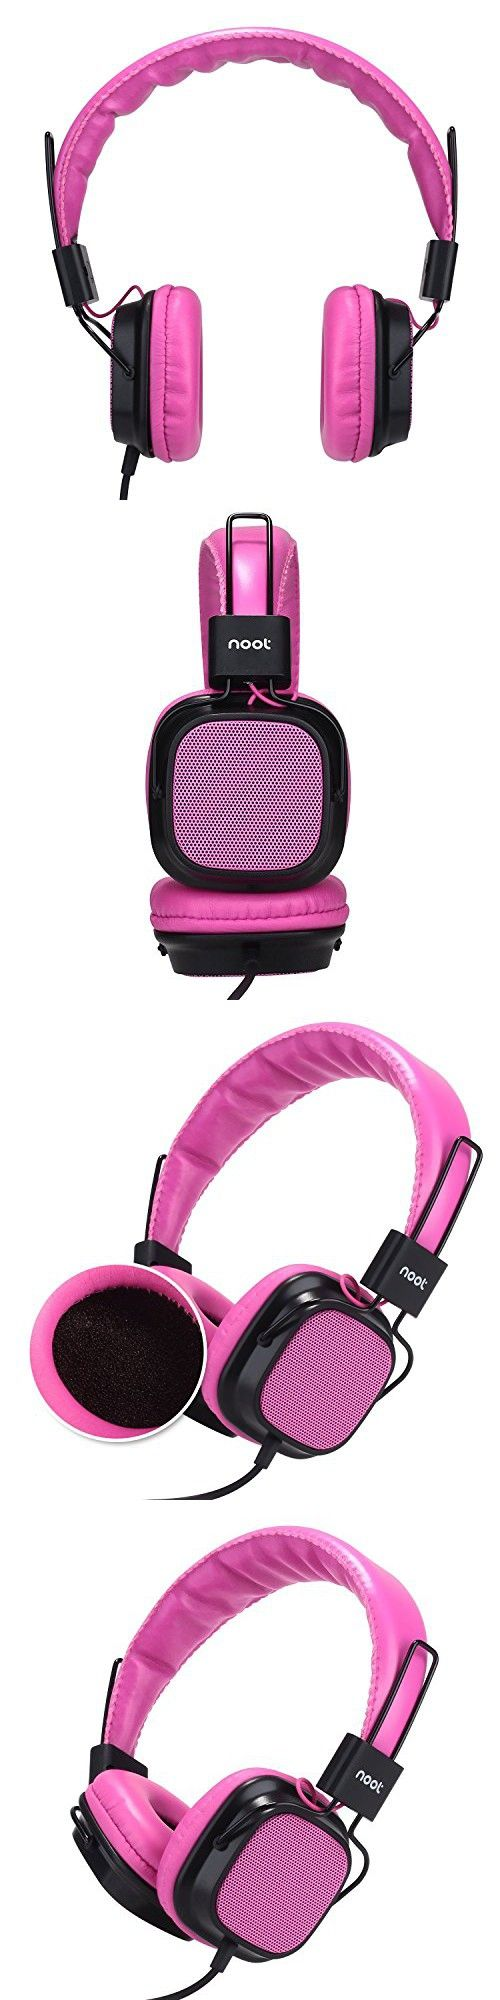 Kids Headphones with Microphone - Noot Products H4 Pink Wired On-Ear Headset for Girls Children Toddlers School Compatible with iPhone, iPad, iPod, Samsung, HTC, LG and all 3.5mm Devices